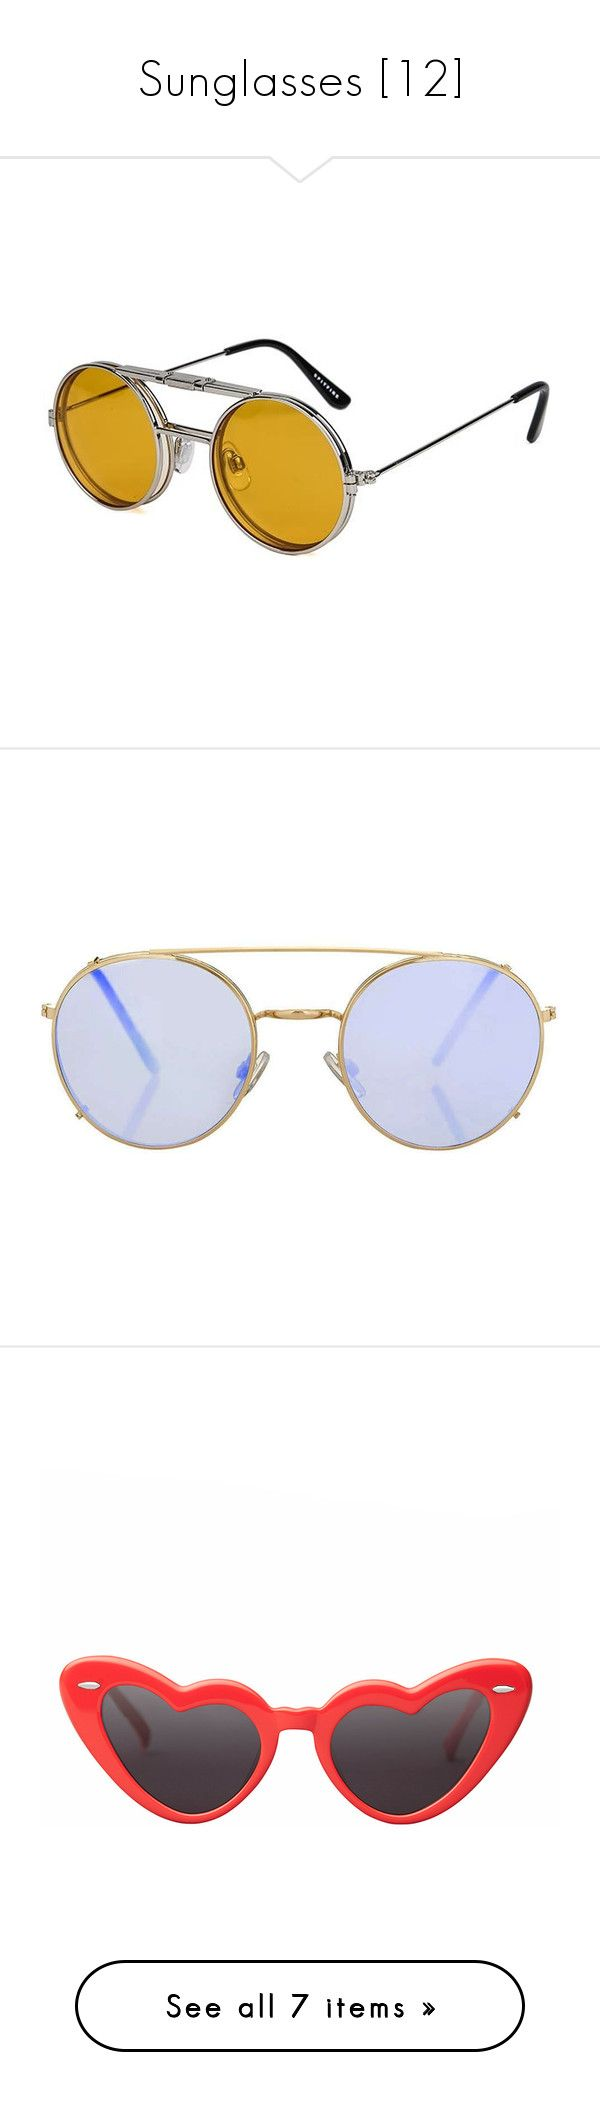 """""""Sunglasses [12]"""" by gdavilla ❤ liked on Polyvore featuring accessories, eyewear, sunglasses, glasses, silver, silver lens sunglasses, clear sunglasses, silver aviators, aviator sunglasses and flip up sunglasses"""